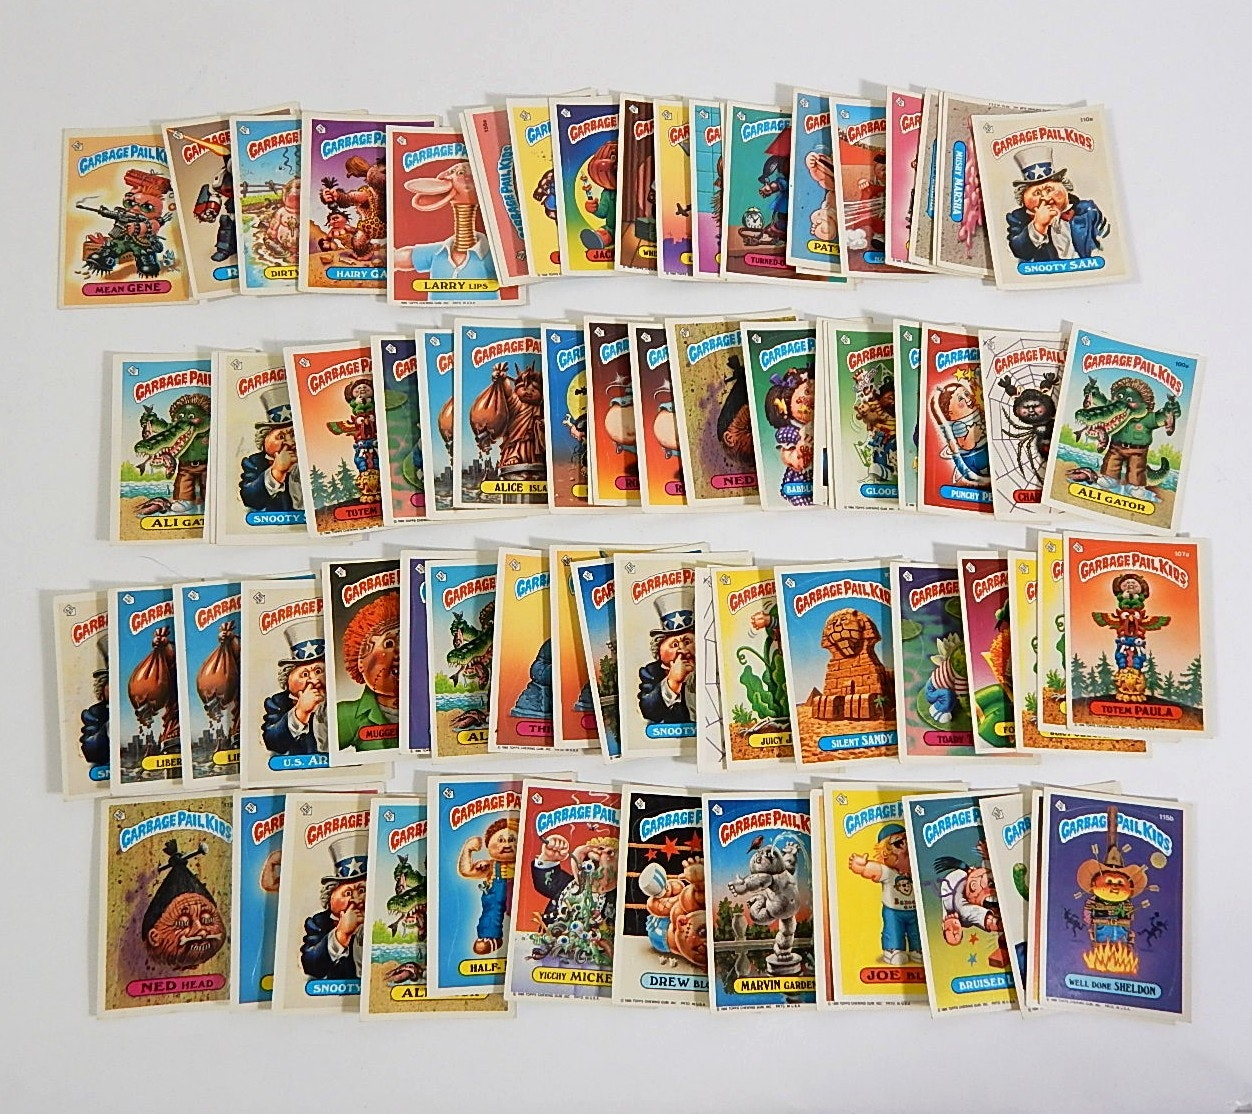 Collection of 1980s Garbage Pail Kids Cards